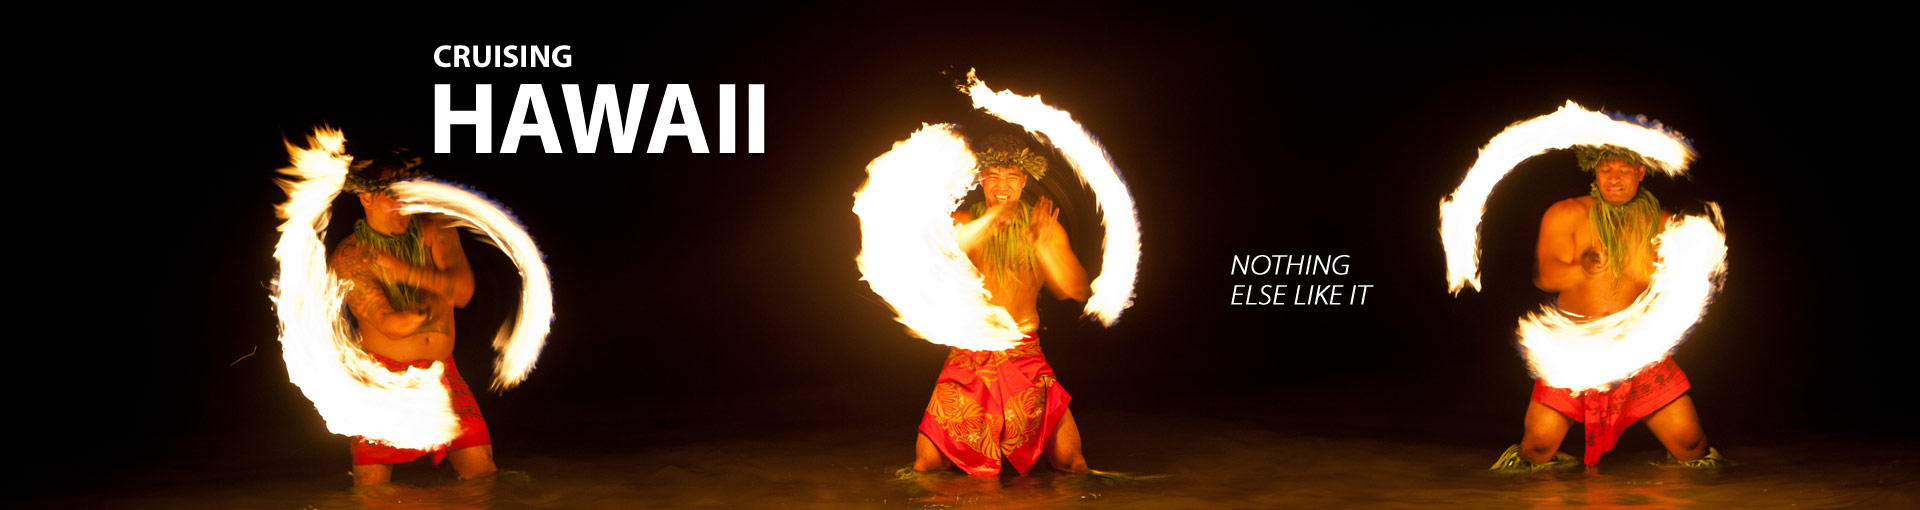 Experience local culture on your cruise to Hawaii